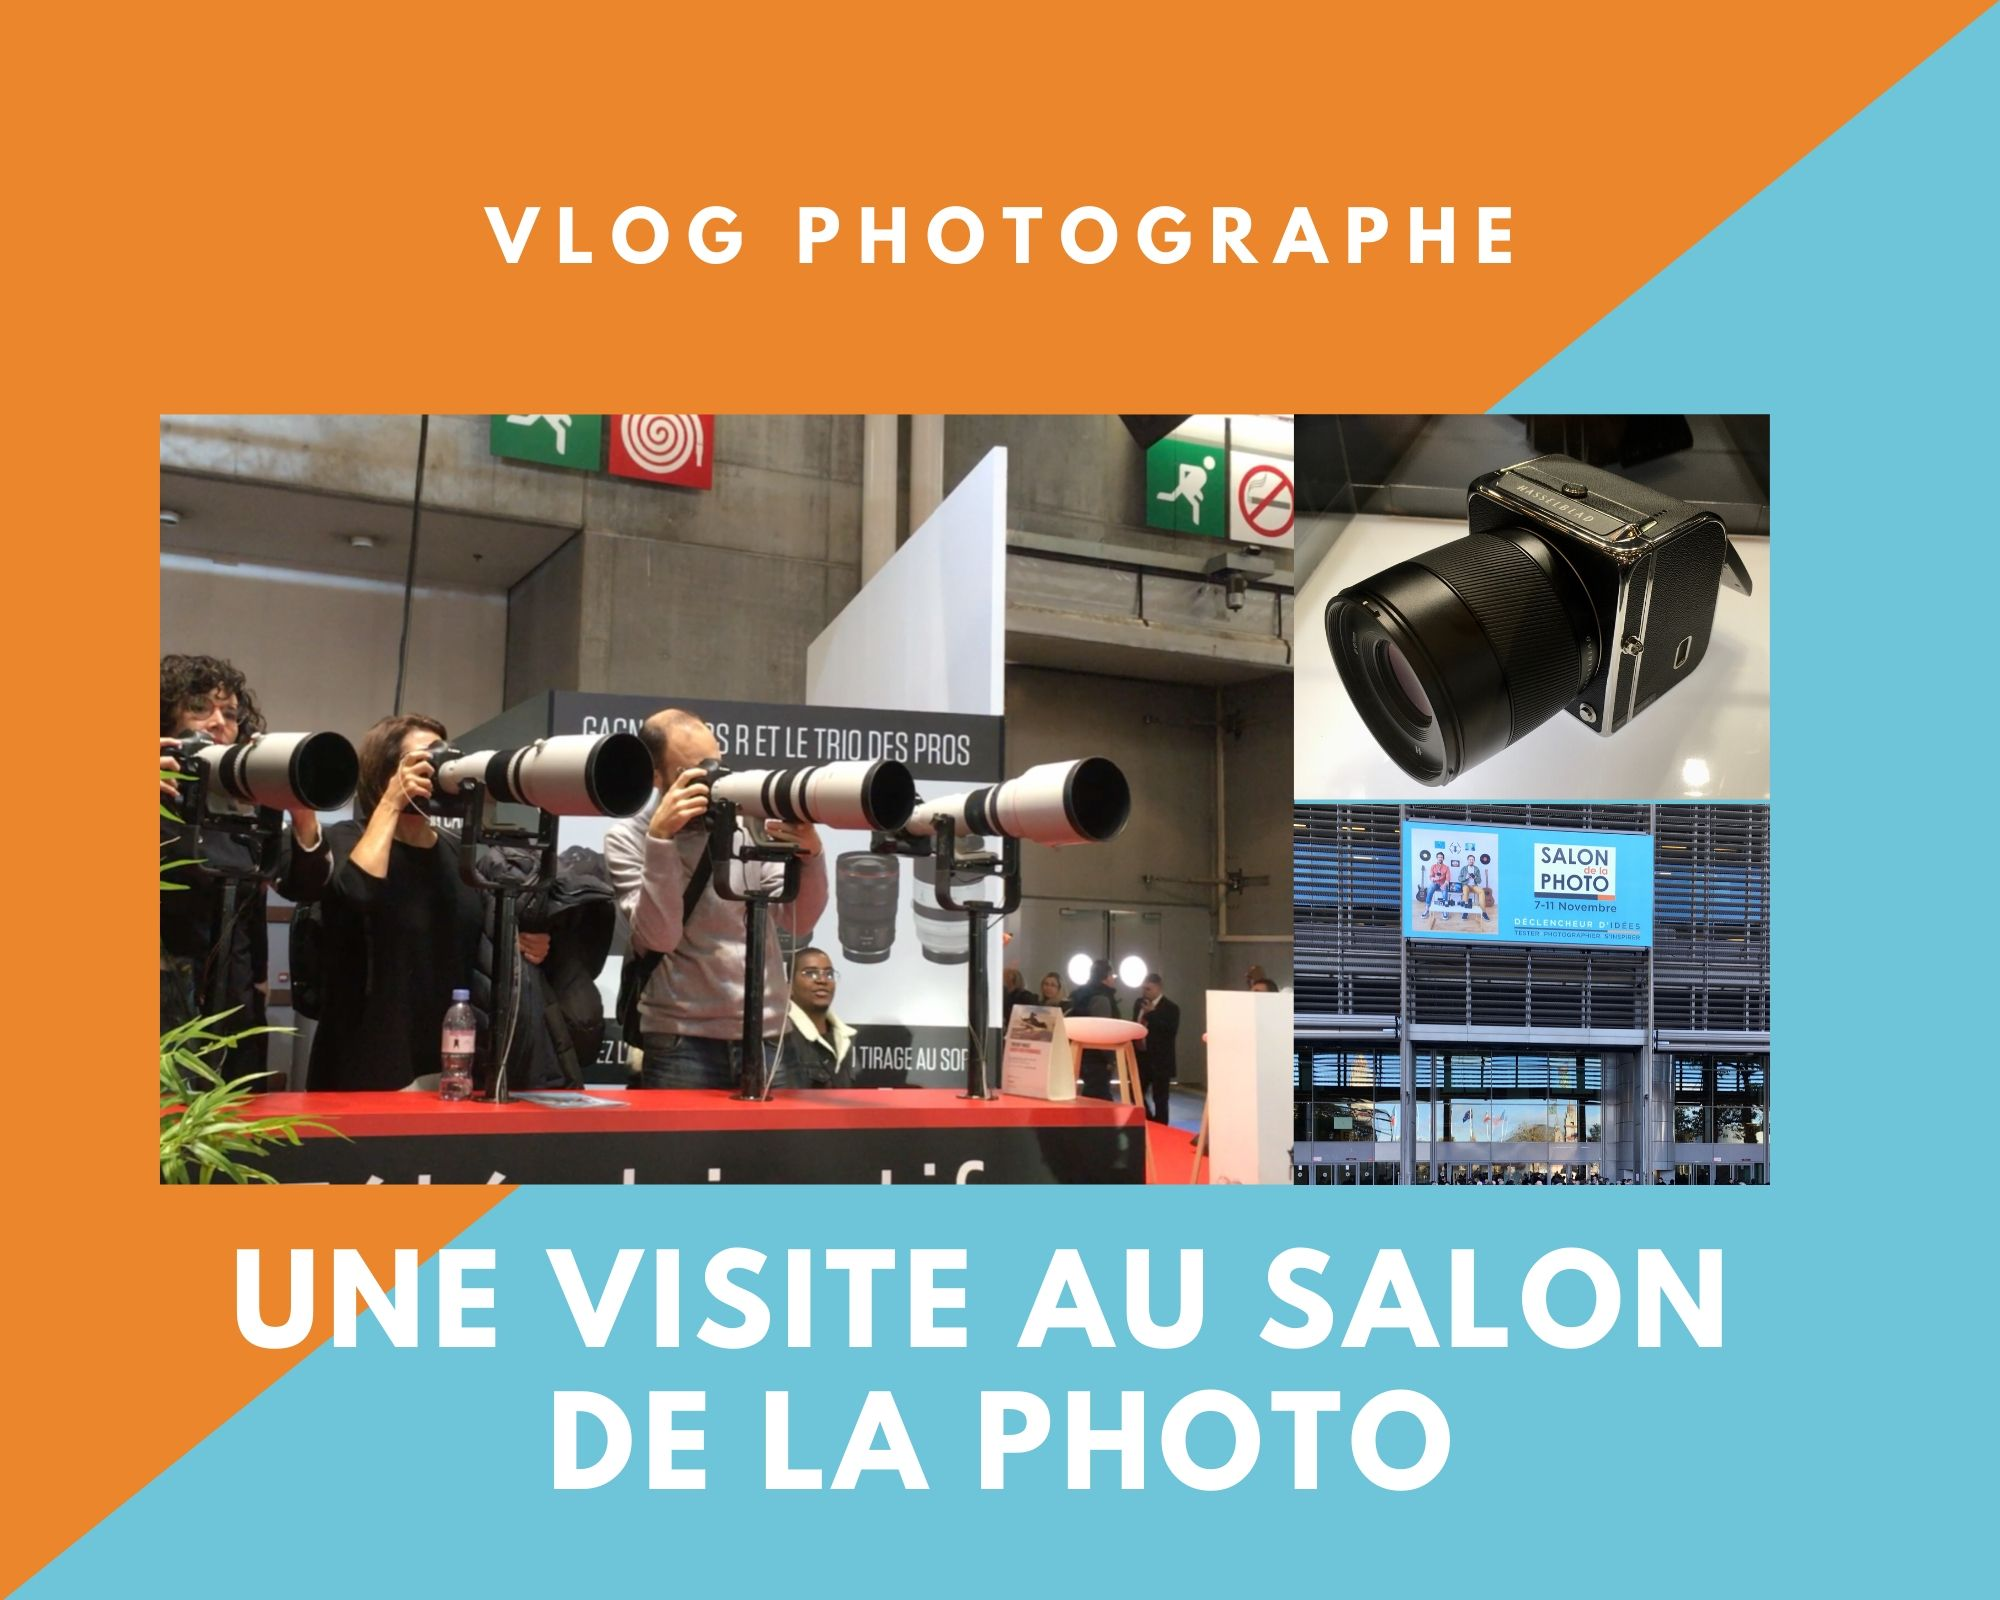 Le salon de la photo, pour quoi faire ?